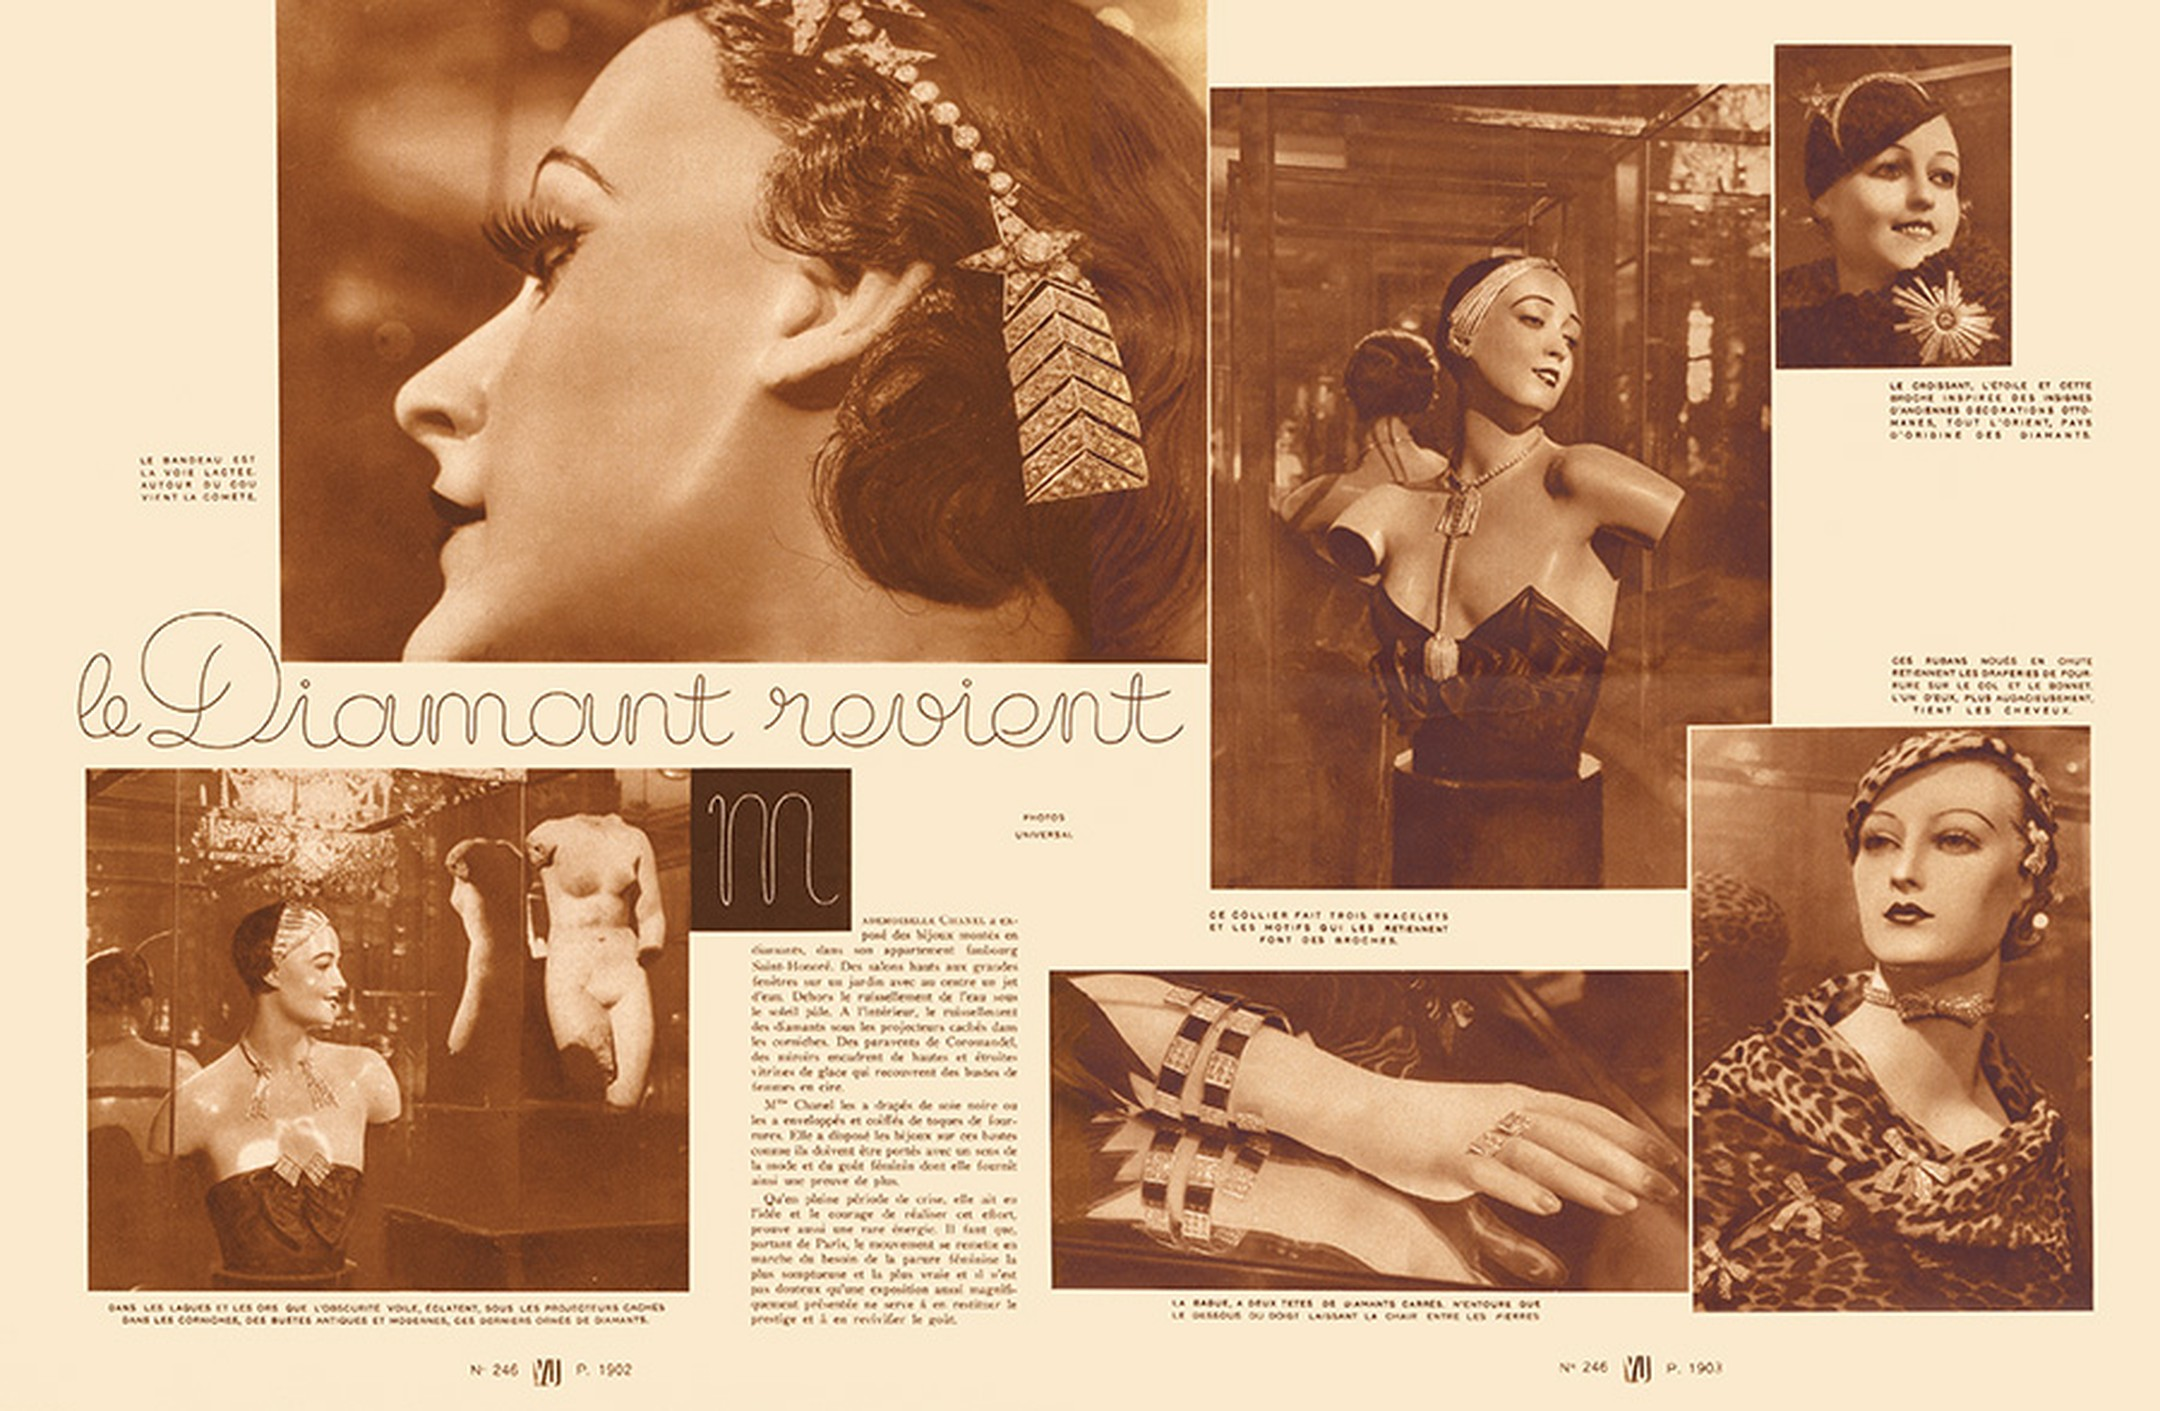 Spot the diamond stars in an article in 'VU' magazine from November 1932 covering Madame Chanel's Bijoux de Diamants exhibition in Paris.